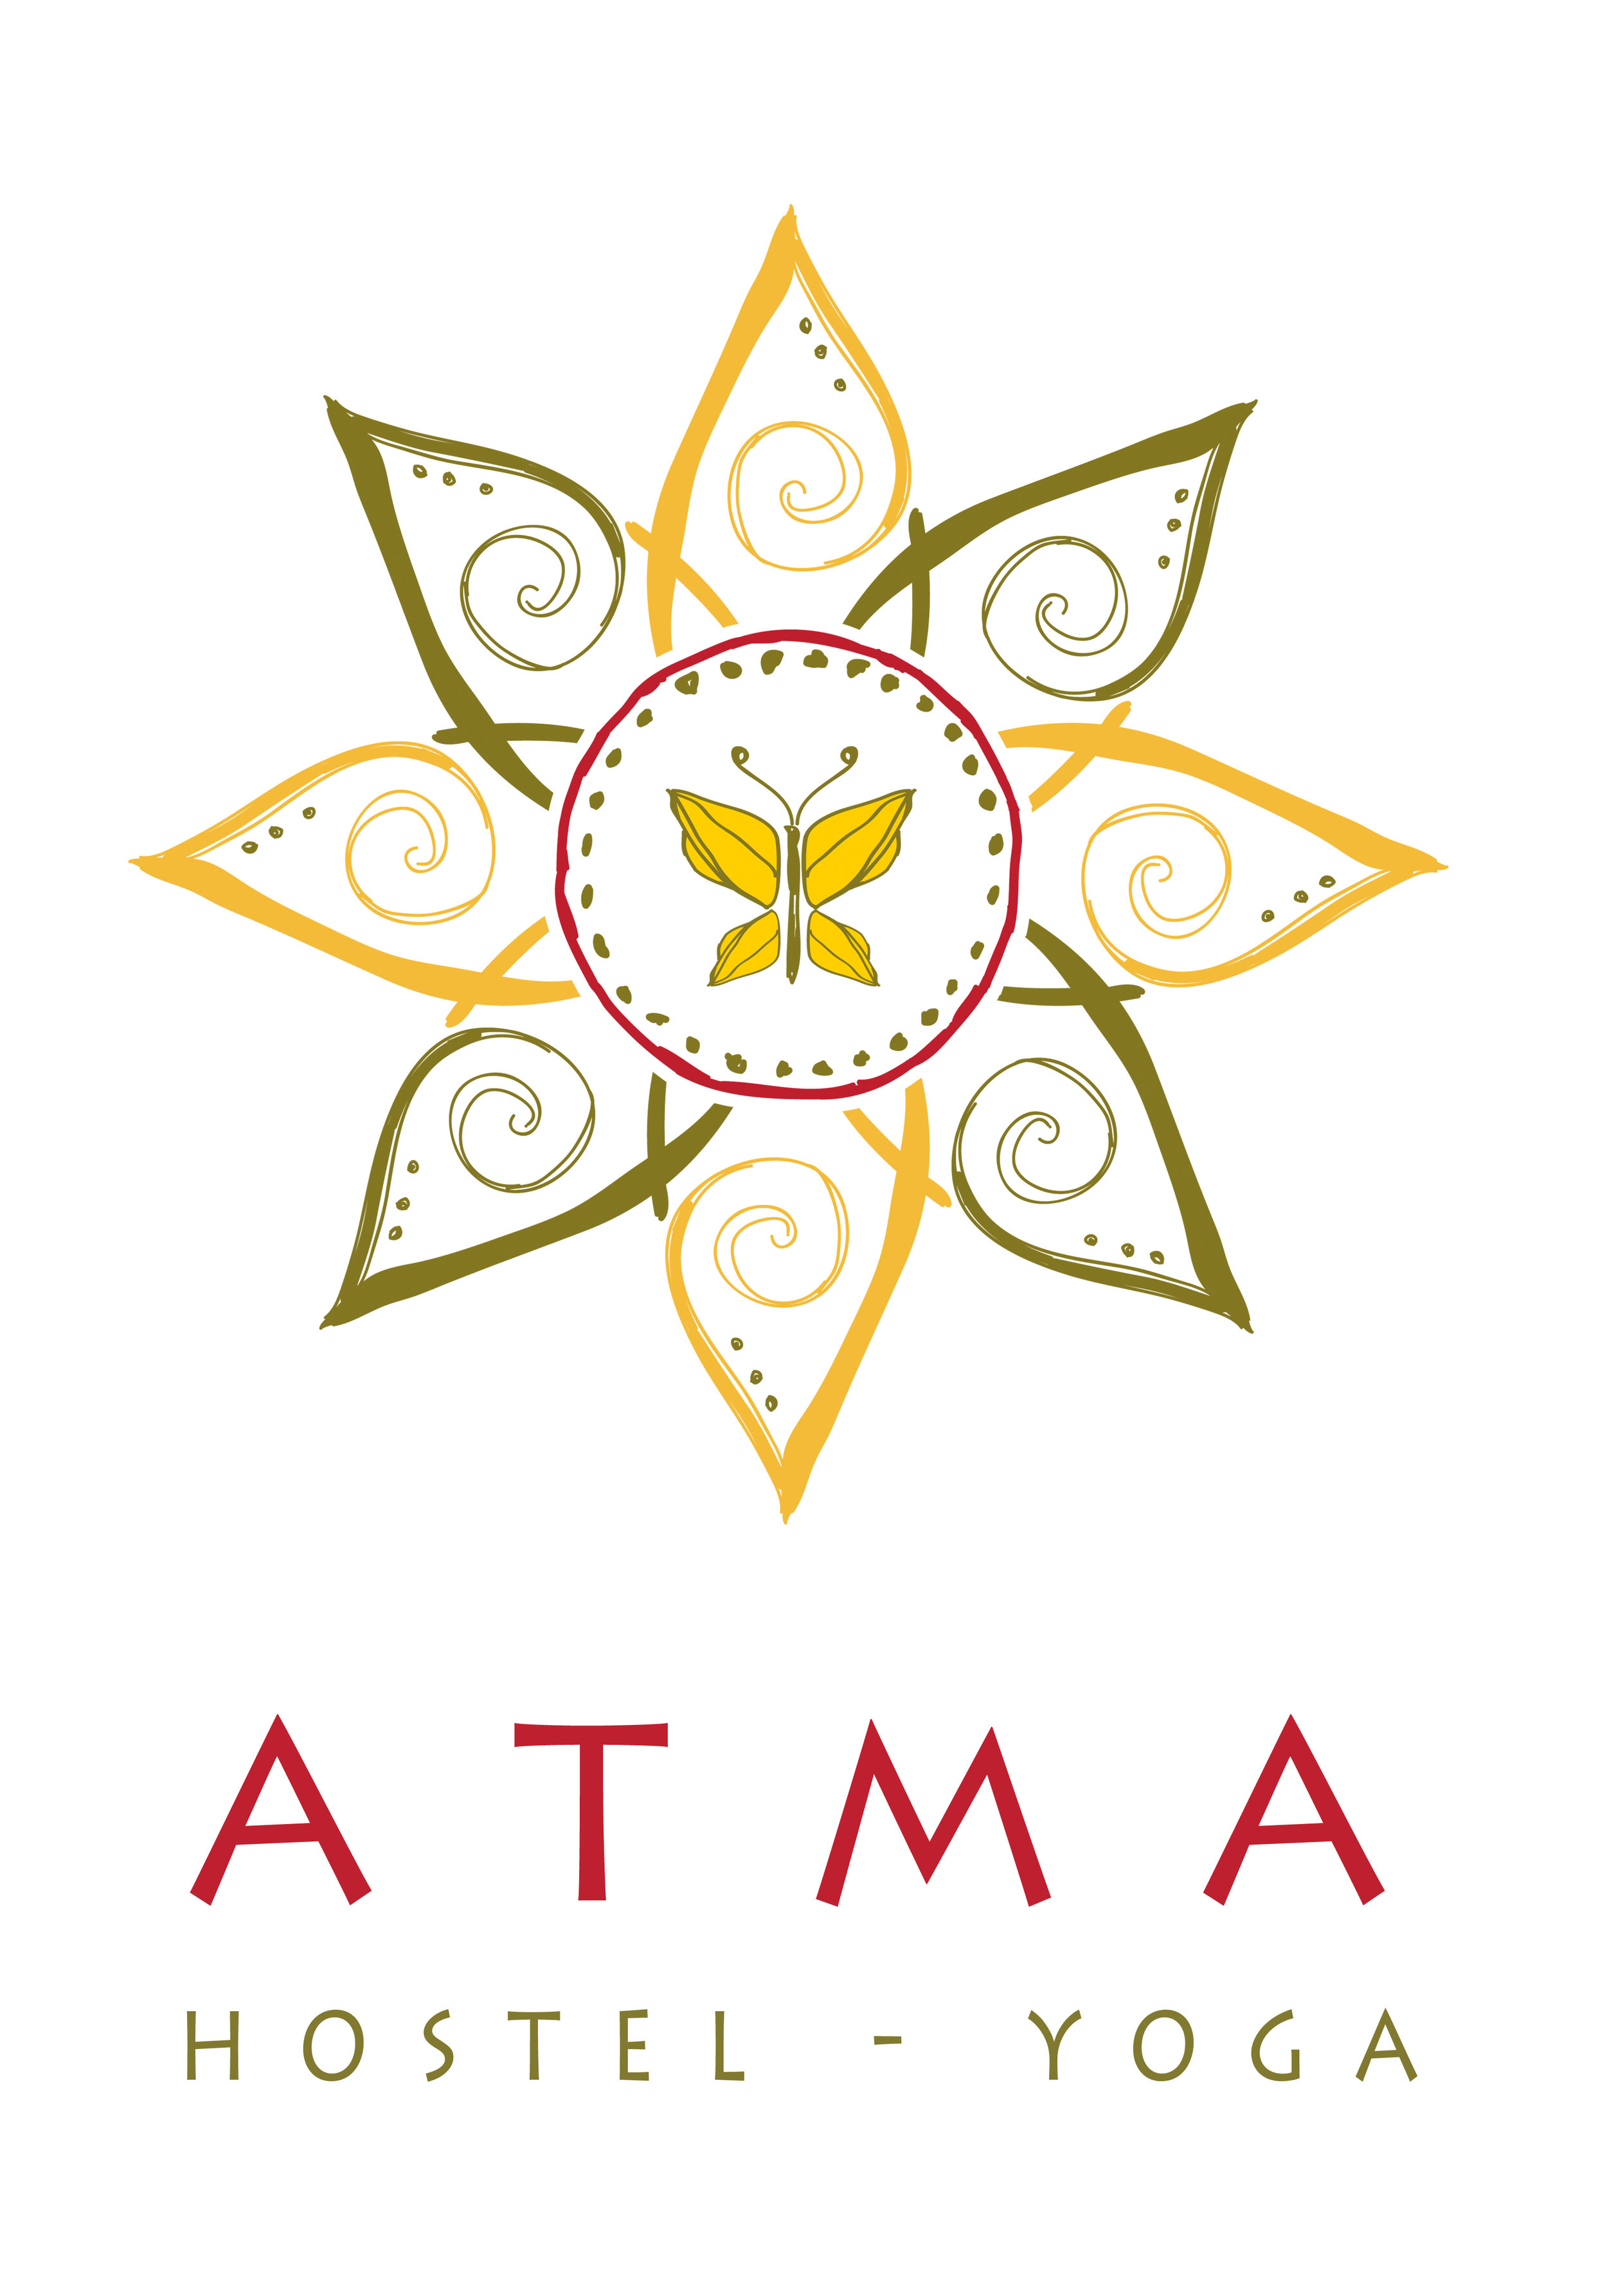 Atma Hostel-Yoga     Sustainable business campaign     ATMA is a friendly hostel and yoga studio at only a few steps from the beach of Huanchaco. A result of love for the world, passion for life and desire to care for their guests.    Check them out!